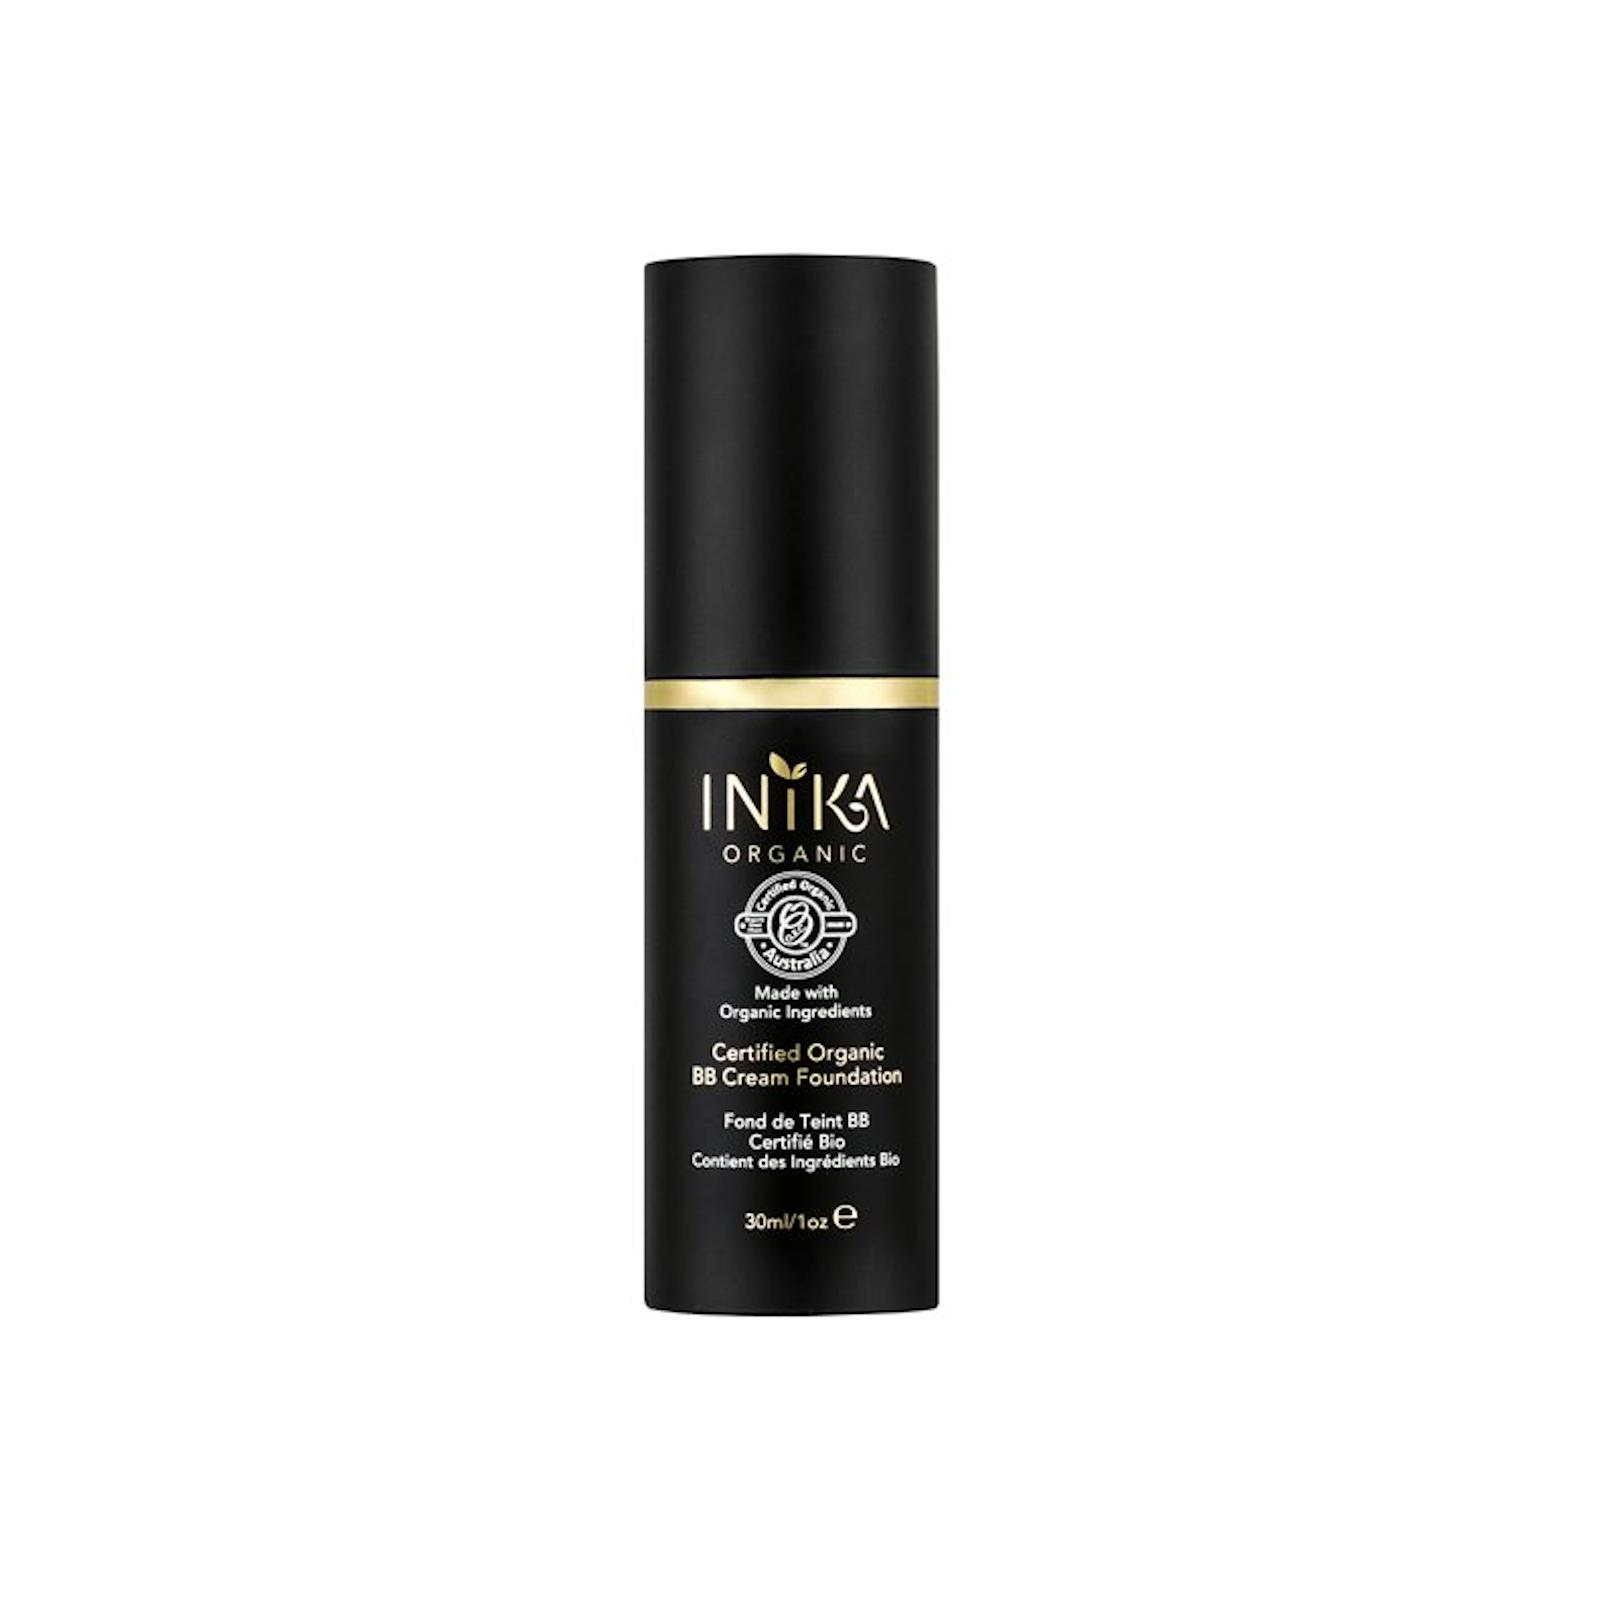 Inika Organic BB krém Cream 30 ml